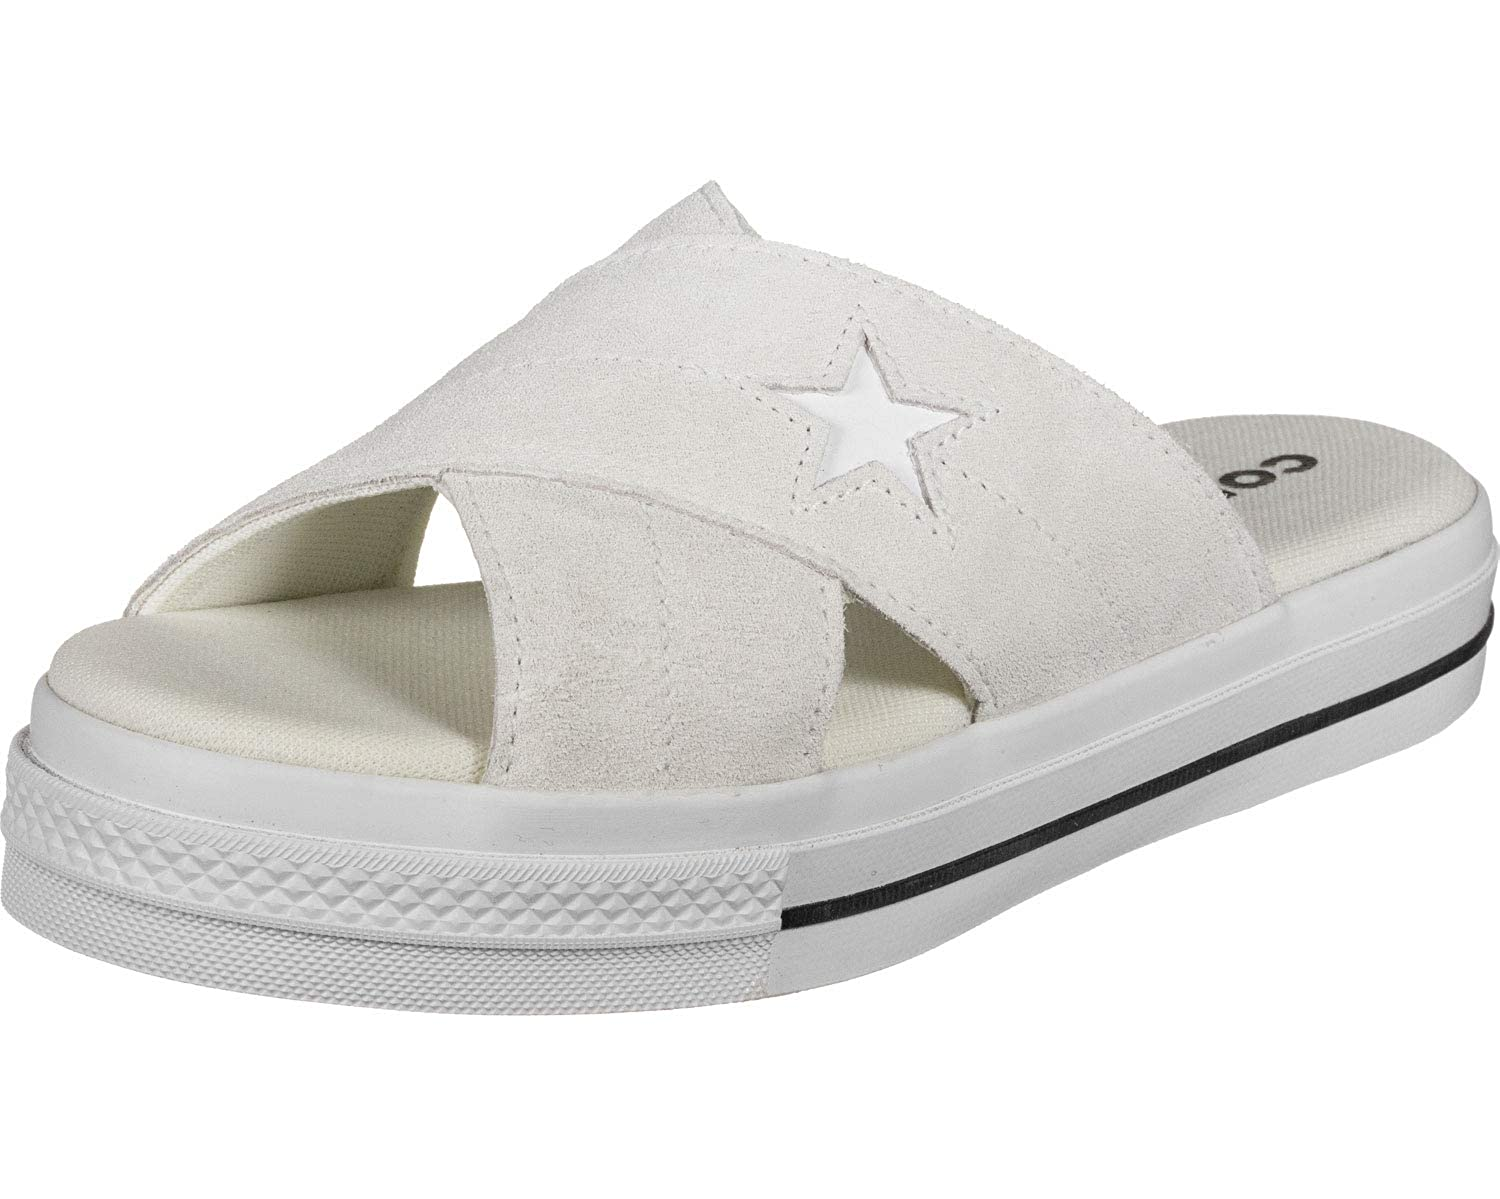 Converse One Star Womens Sandals White